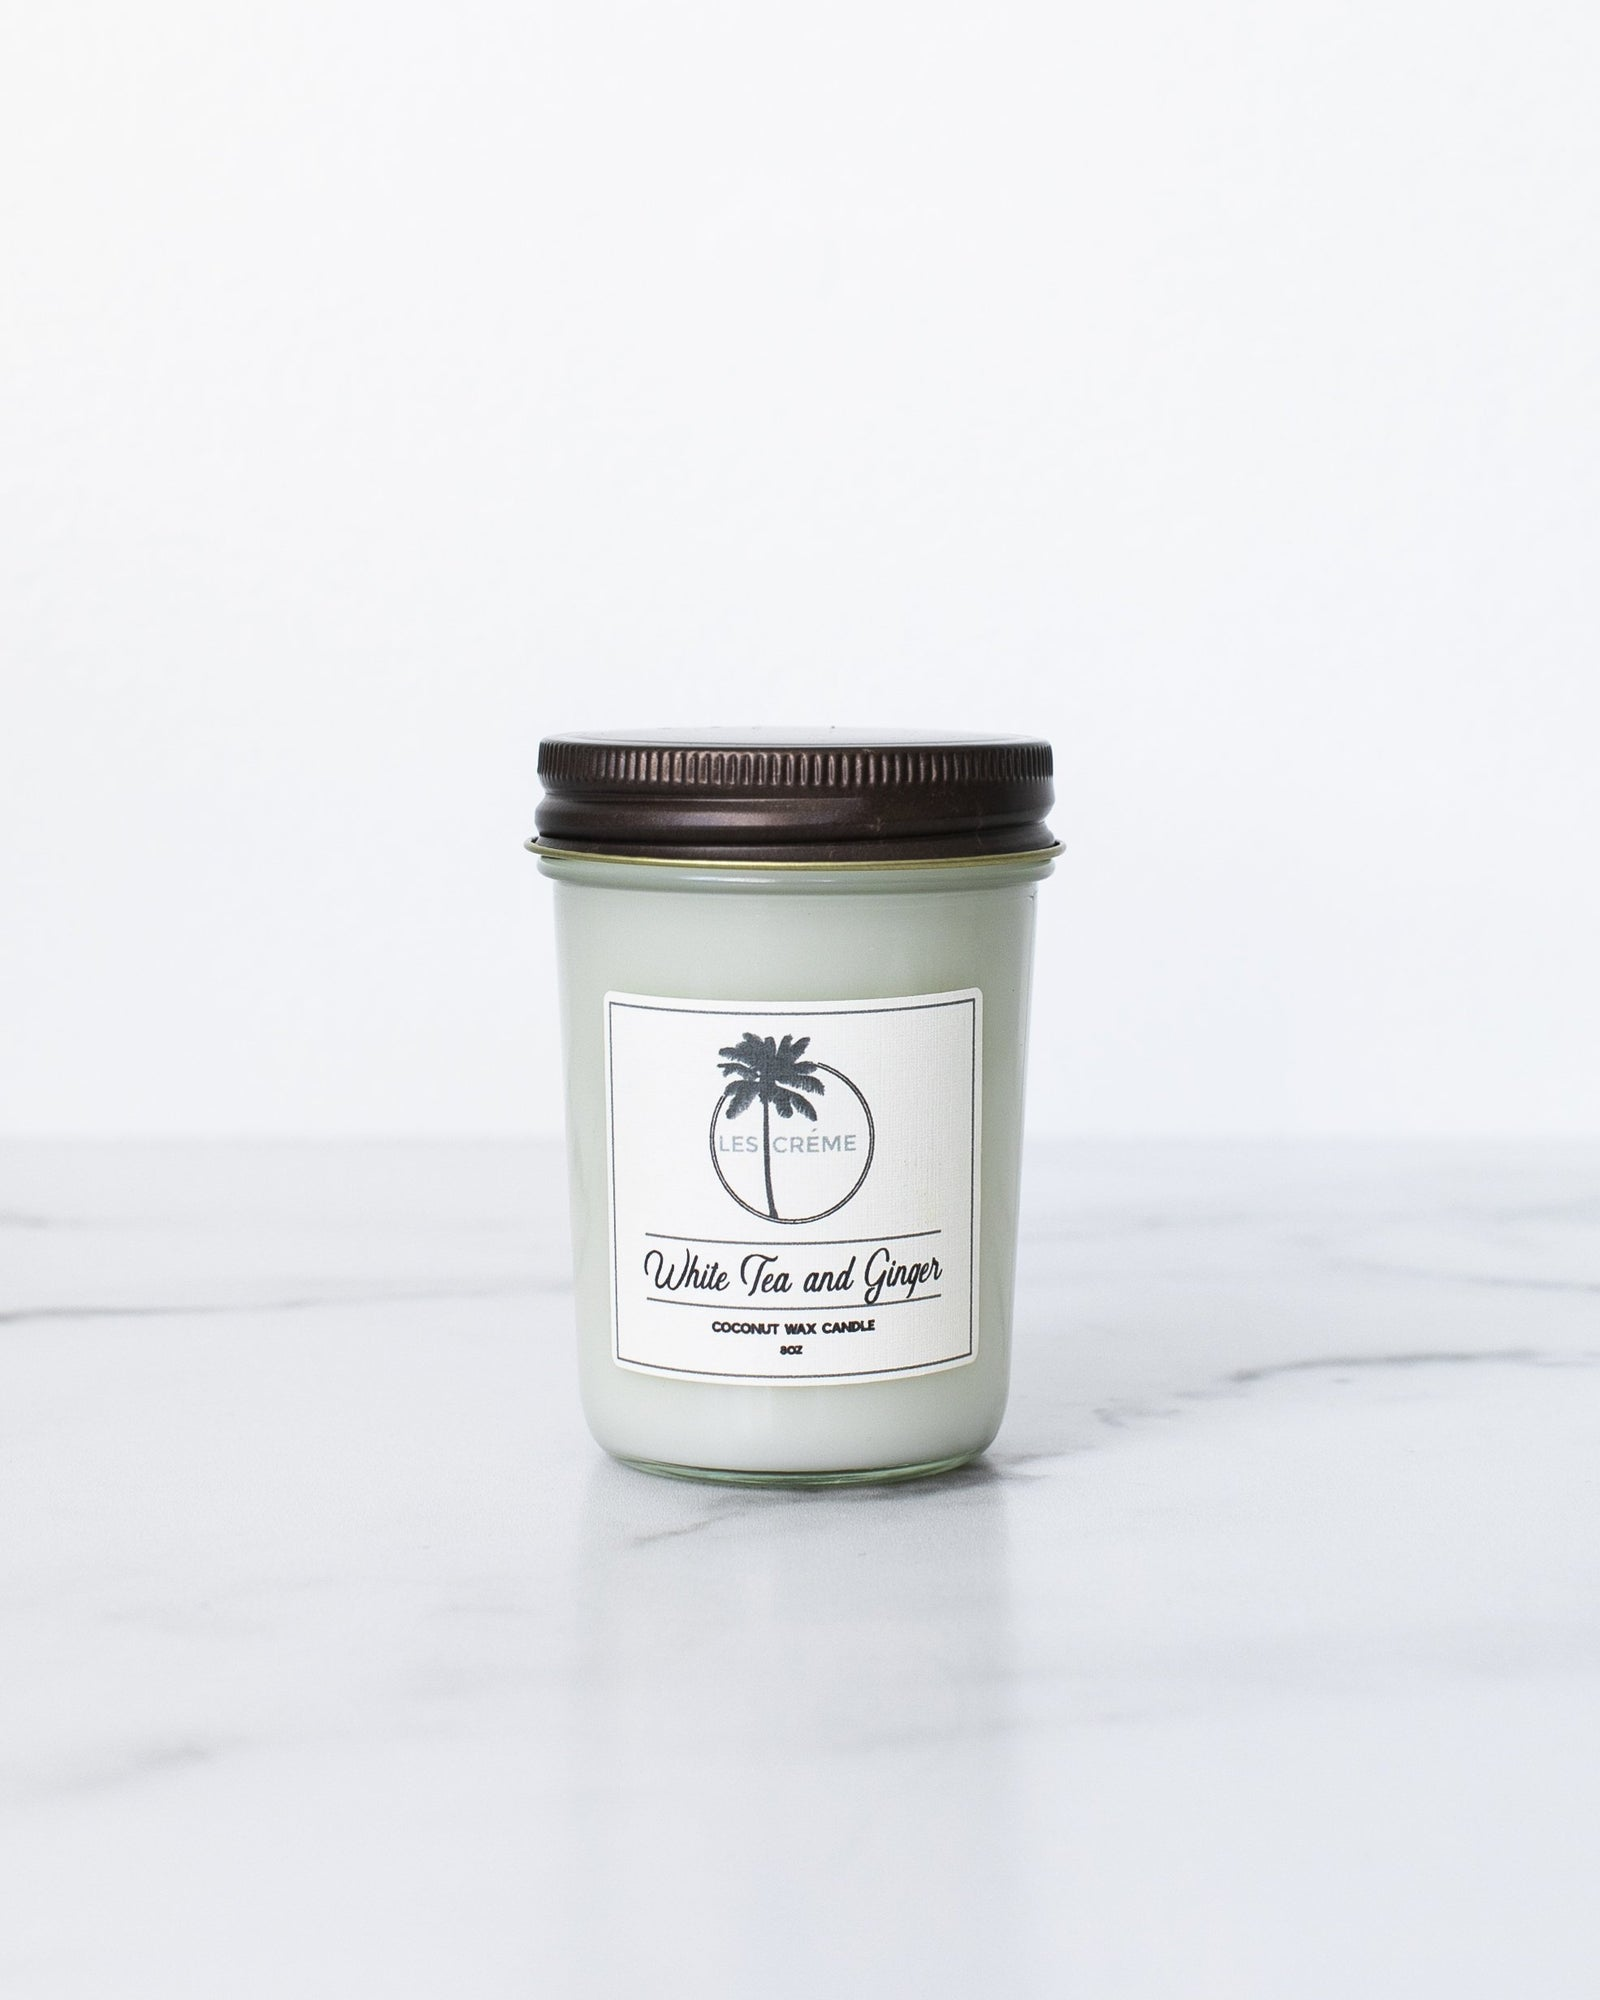 White Tea + Ginger Scent Coconut Wax Candle